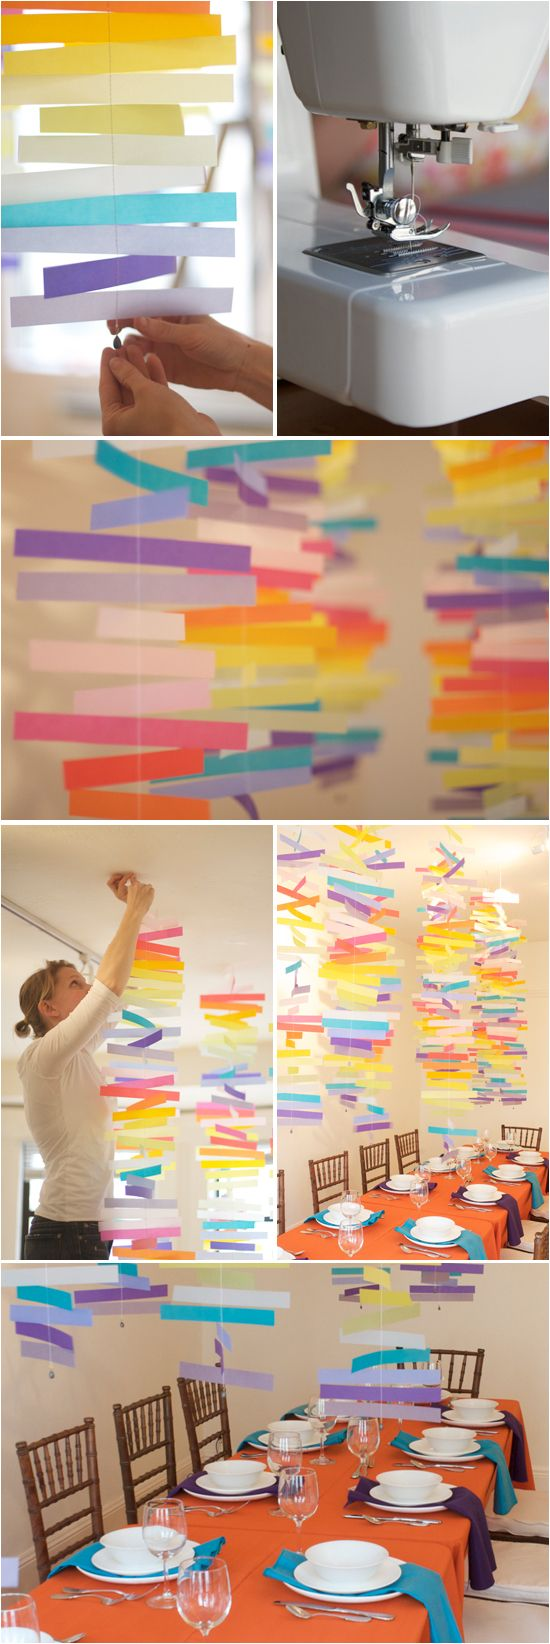 sukkot- DIY: Modern Colorful Mobiles - Project Wedding